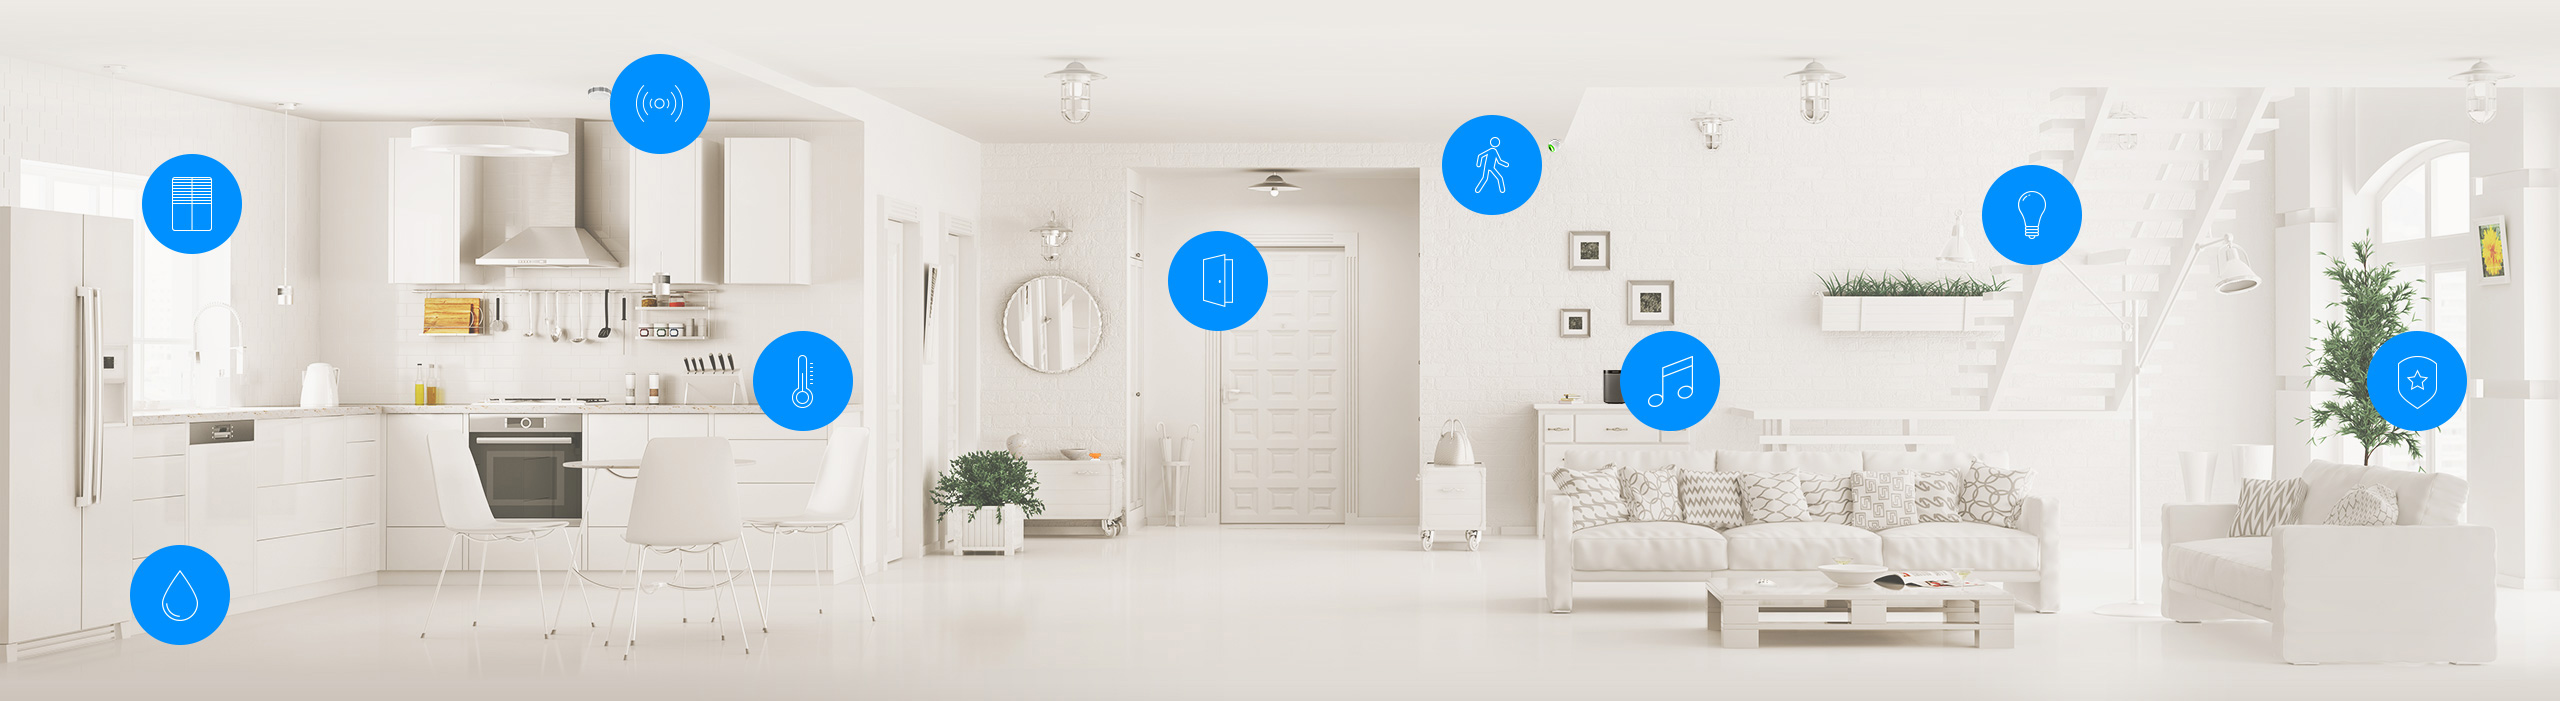 Your Home by Fibaro